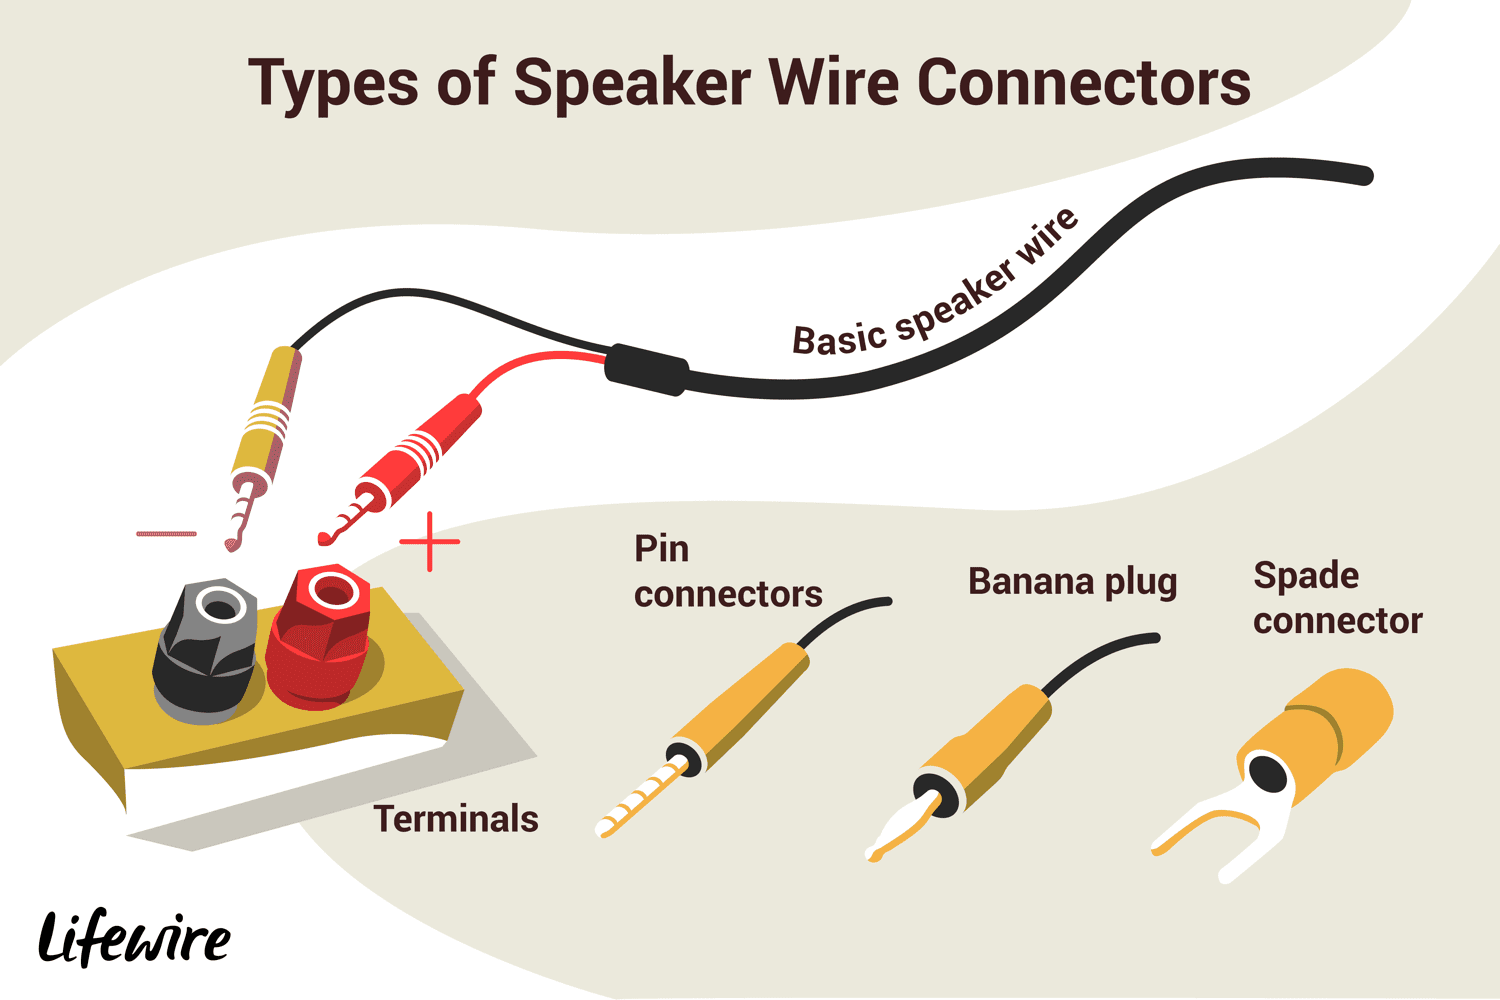 How To Connect Speakers Using Speaker Wire Old Wiring Red Black And Green Along With Birds On A Metal Wall An Illustration Of The Different Types Connectors